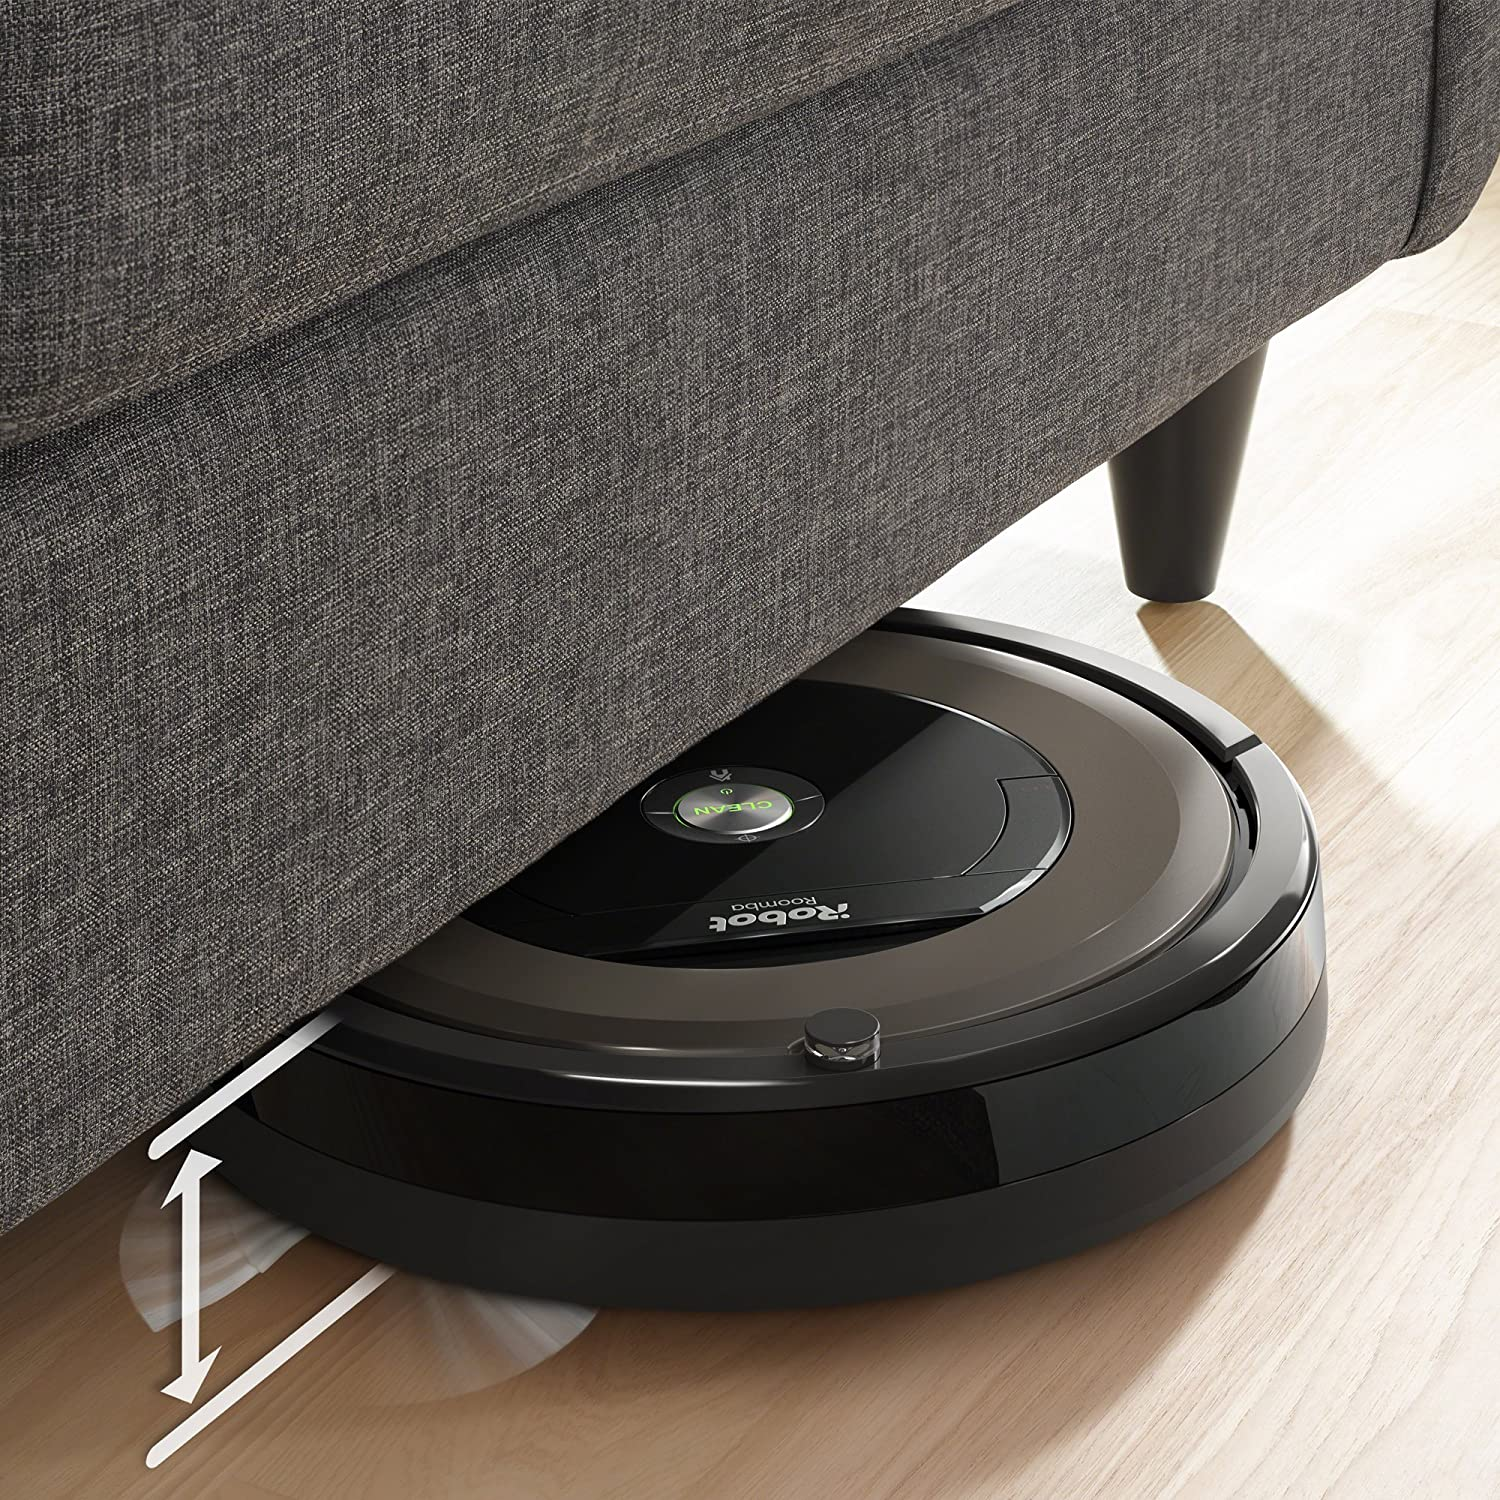 irobot 890 review